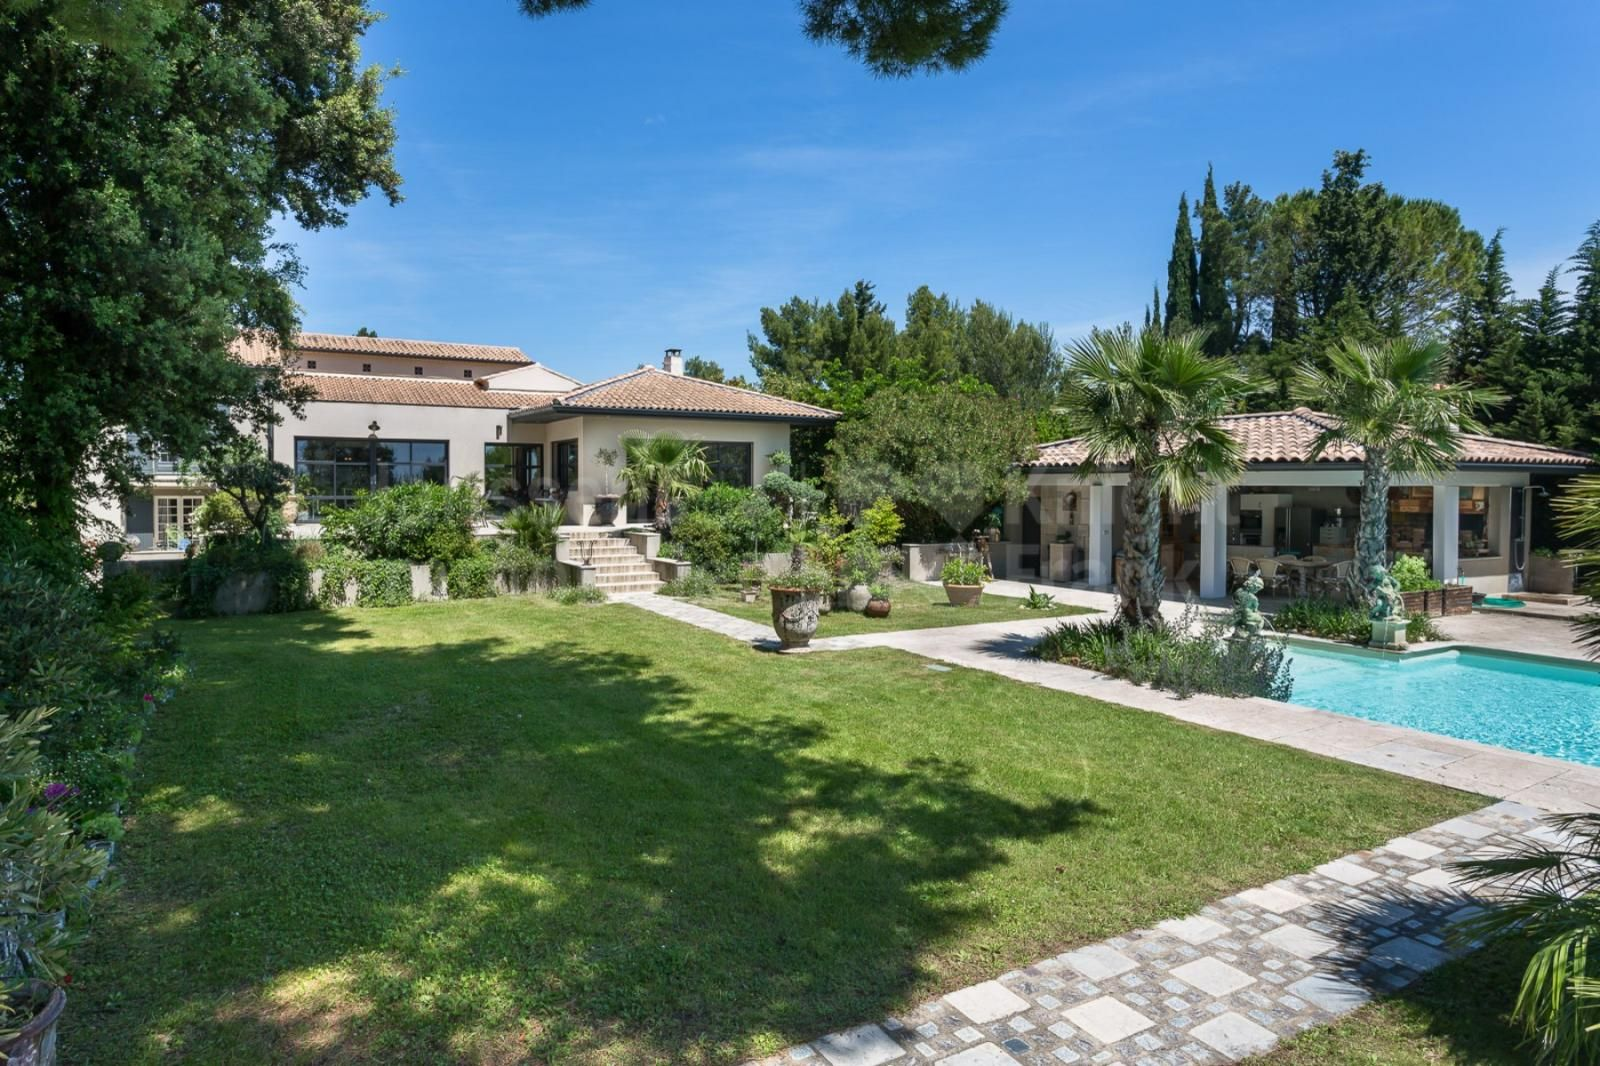 Beautiful Villa With Swimming Pool For Sale In A Quiet Area Near Mazan Janssens Immobilier Provence Beautiful Villas Quiet Area Swimming Pools